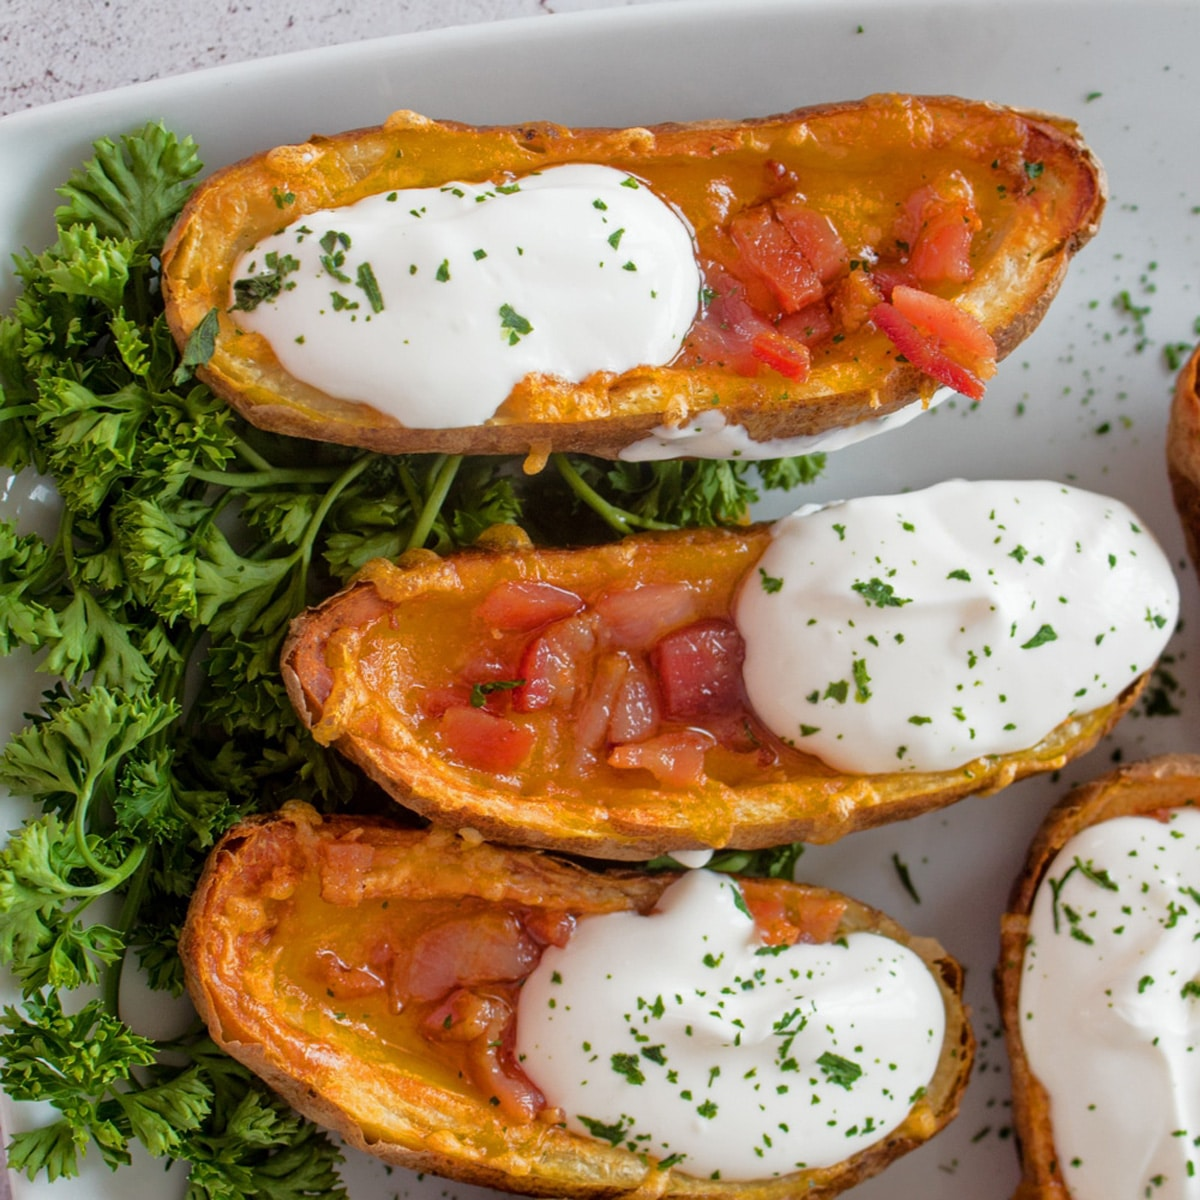 Three potato skins with sour cream and bacon on a white plate.